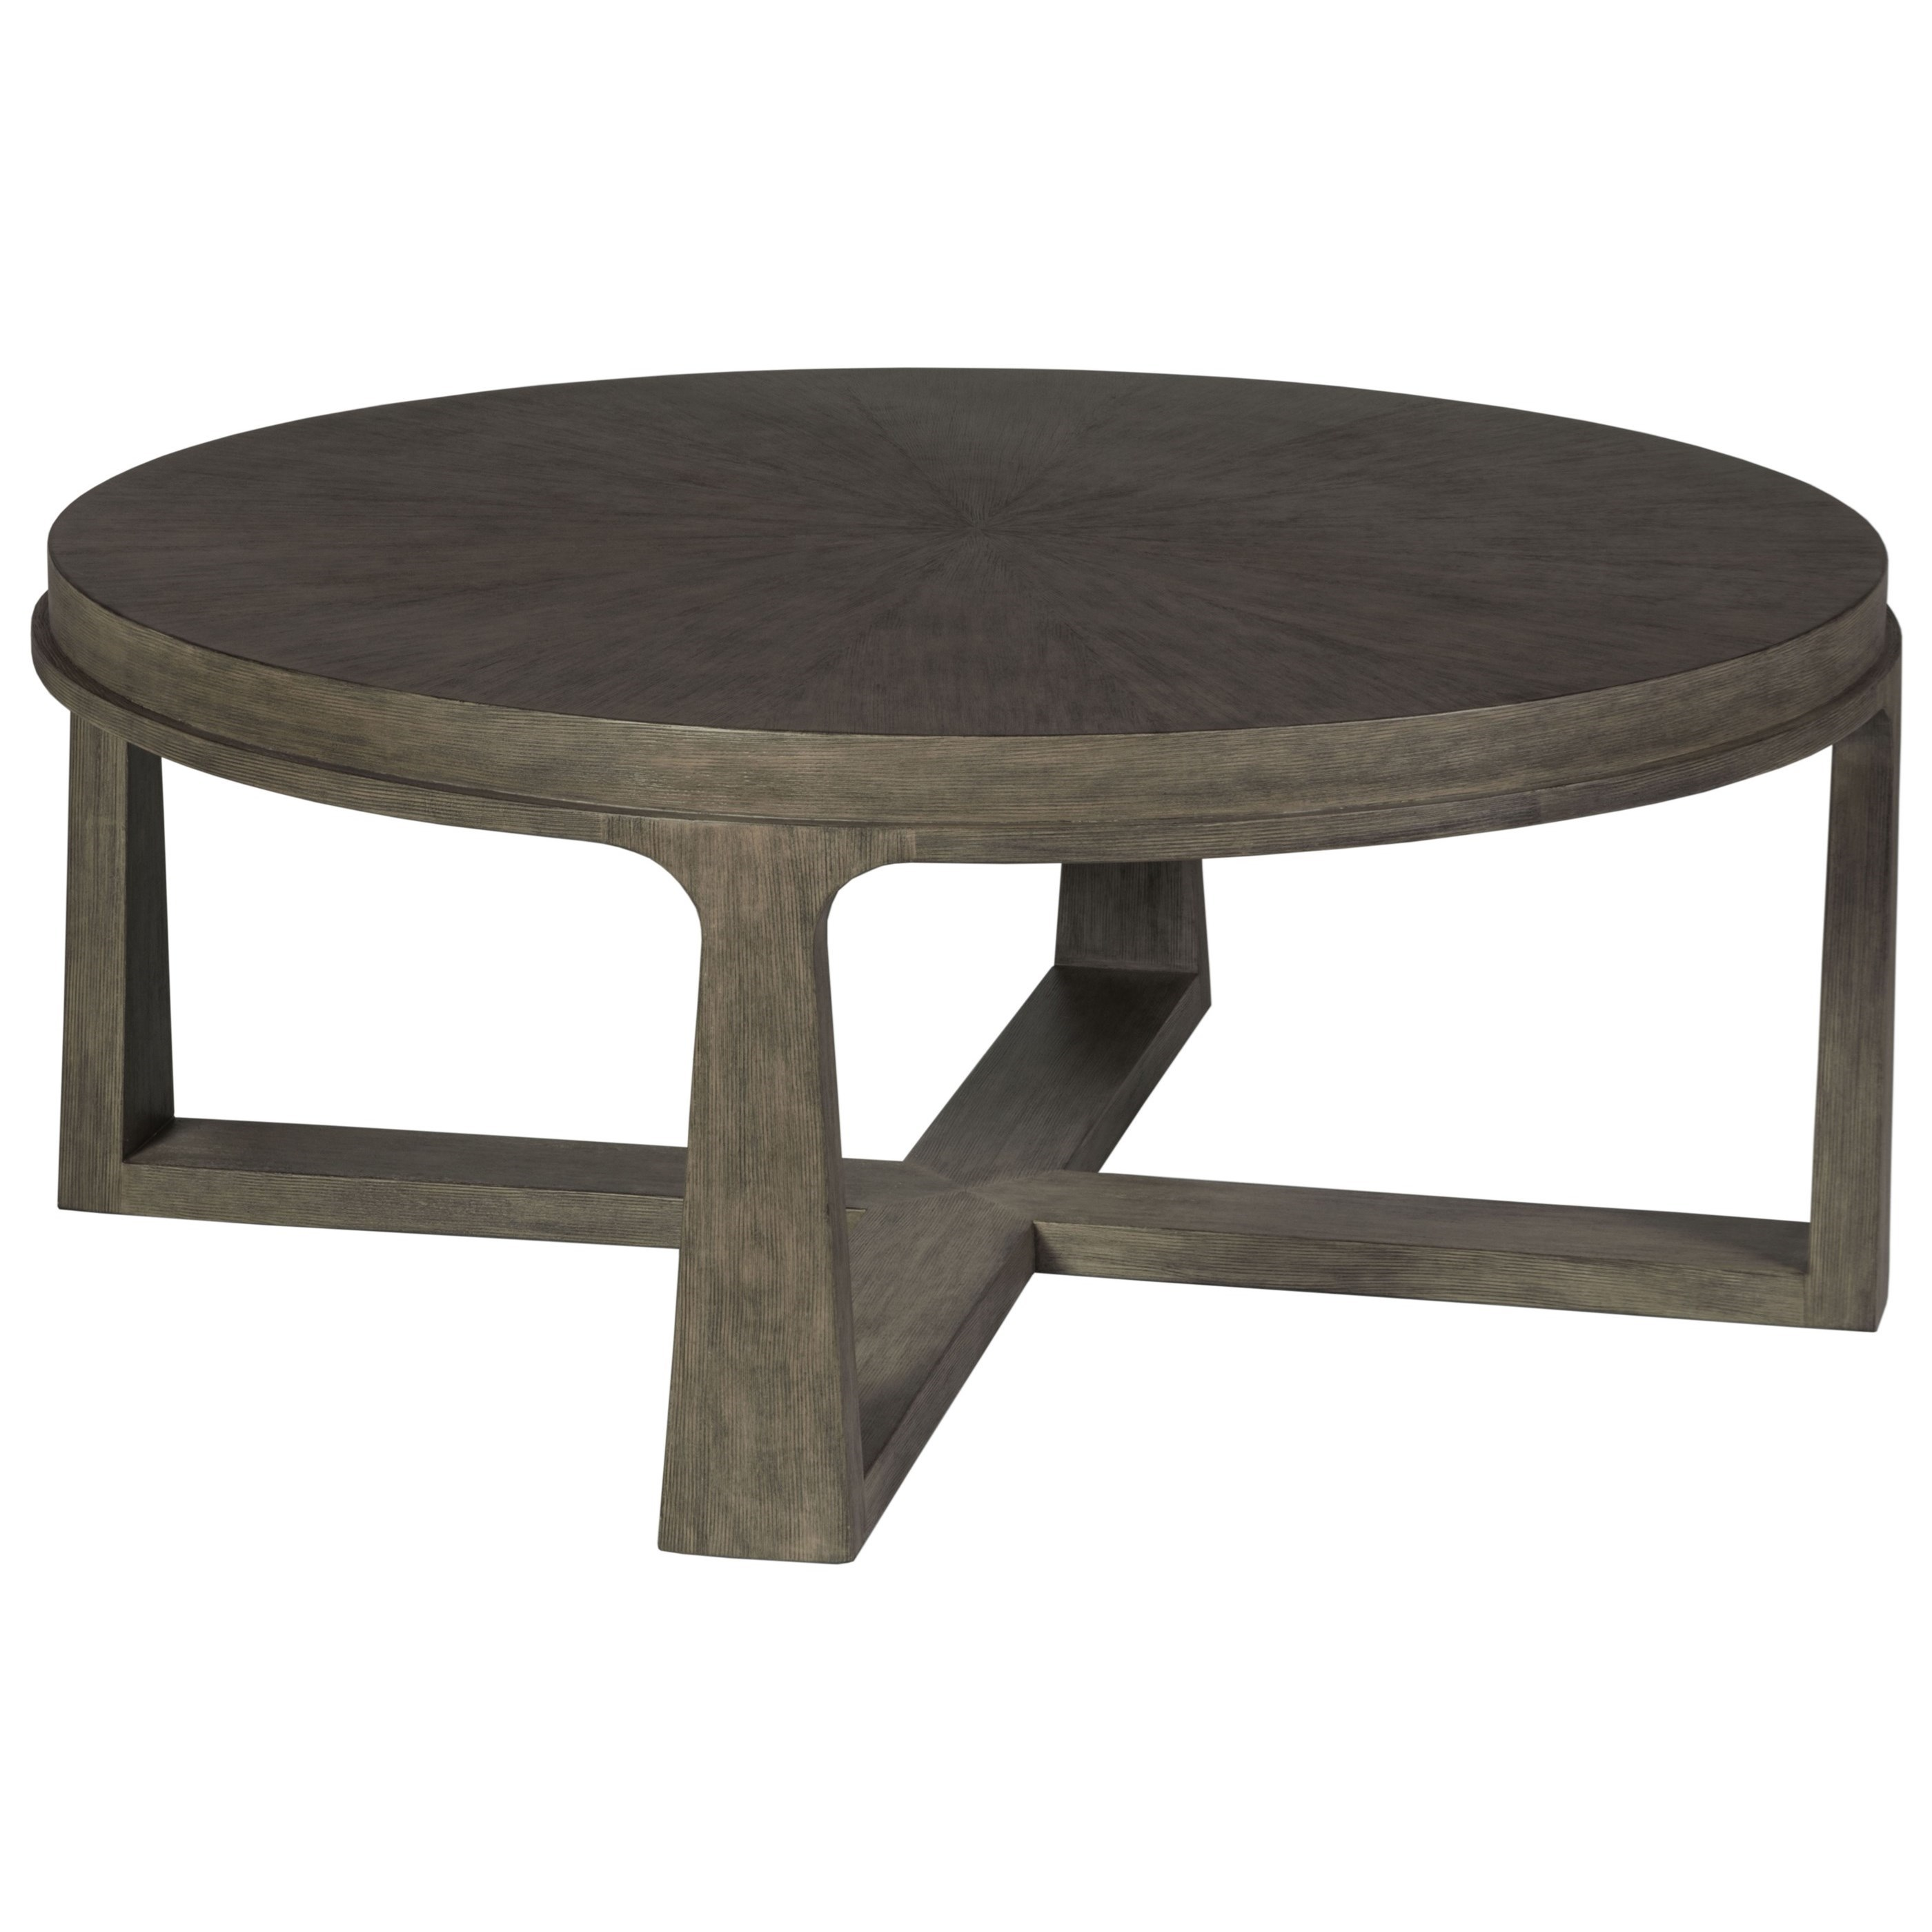 Cohesion Rousseau Round Cocktail Table by Artistica at C. S. Wo & Sons Hawaii